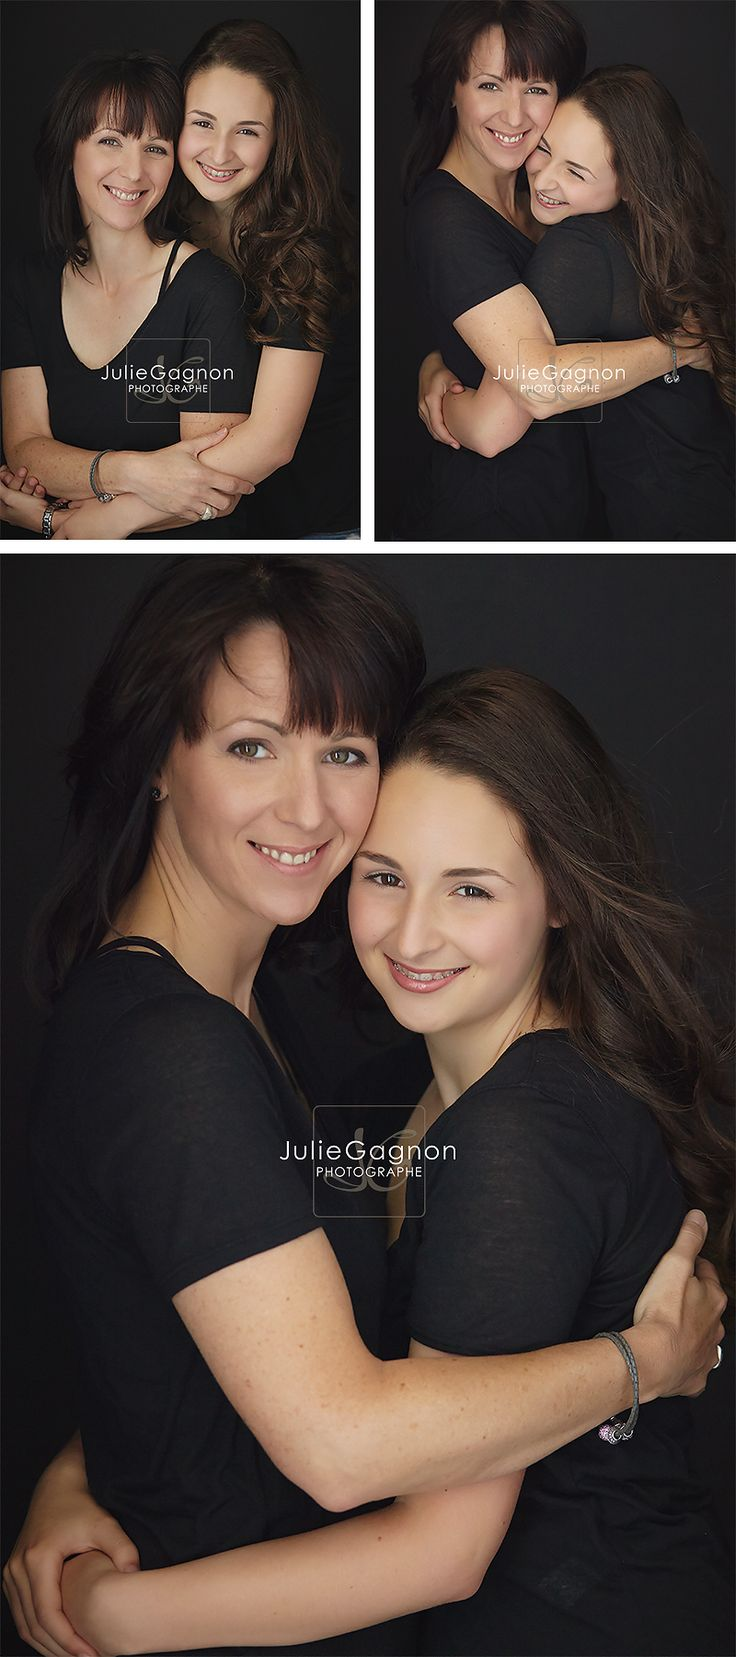 Séance mère et fille par Julie Gagnon Photographe de la région de Québec, Canada/ Mother and daughter by Julie Gagnon Photographer in Québec City, Canada